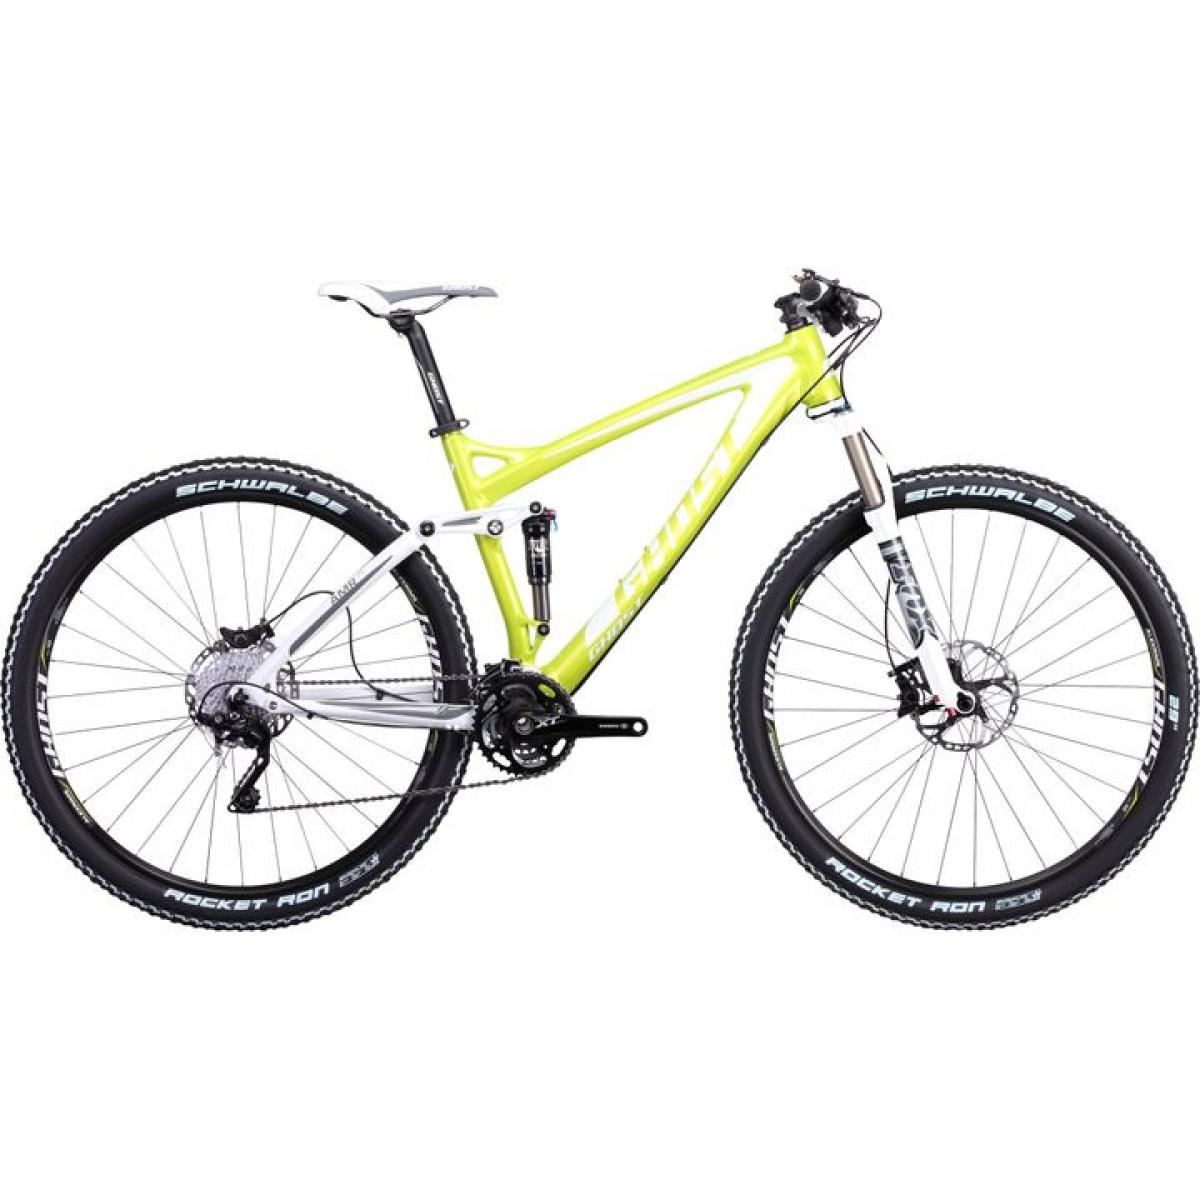 ghost amr 2975 mountain bike reviews